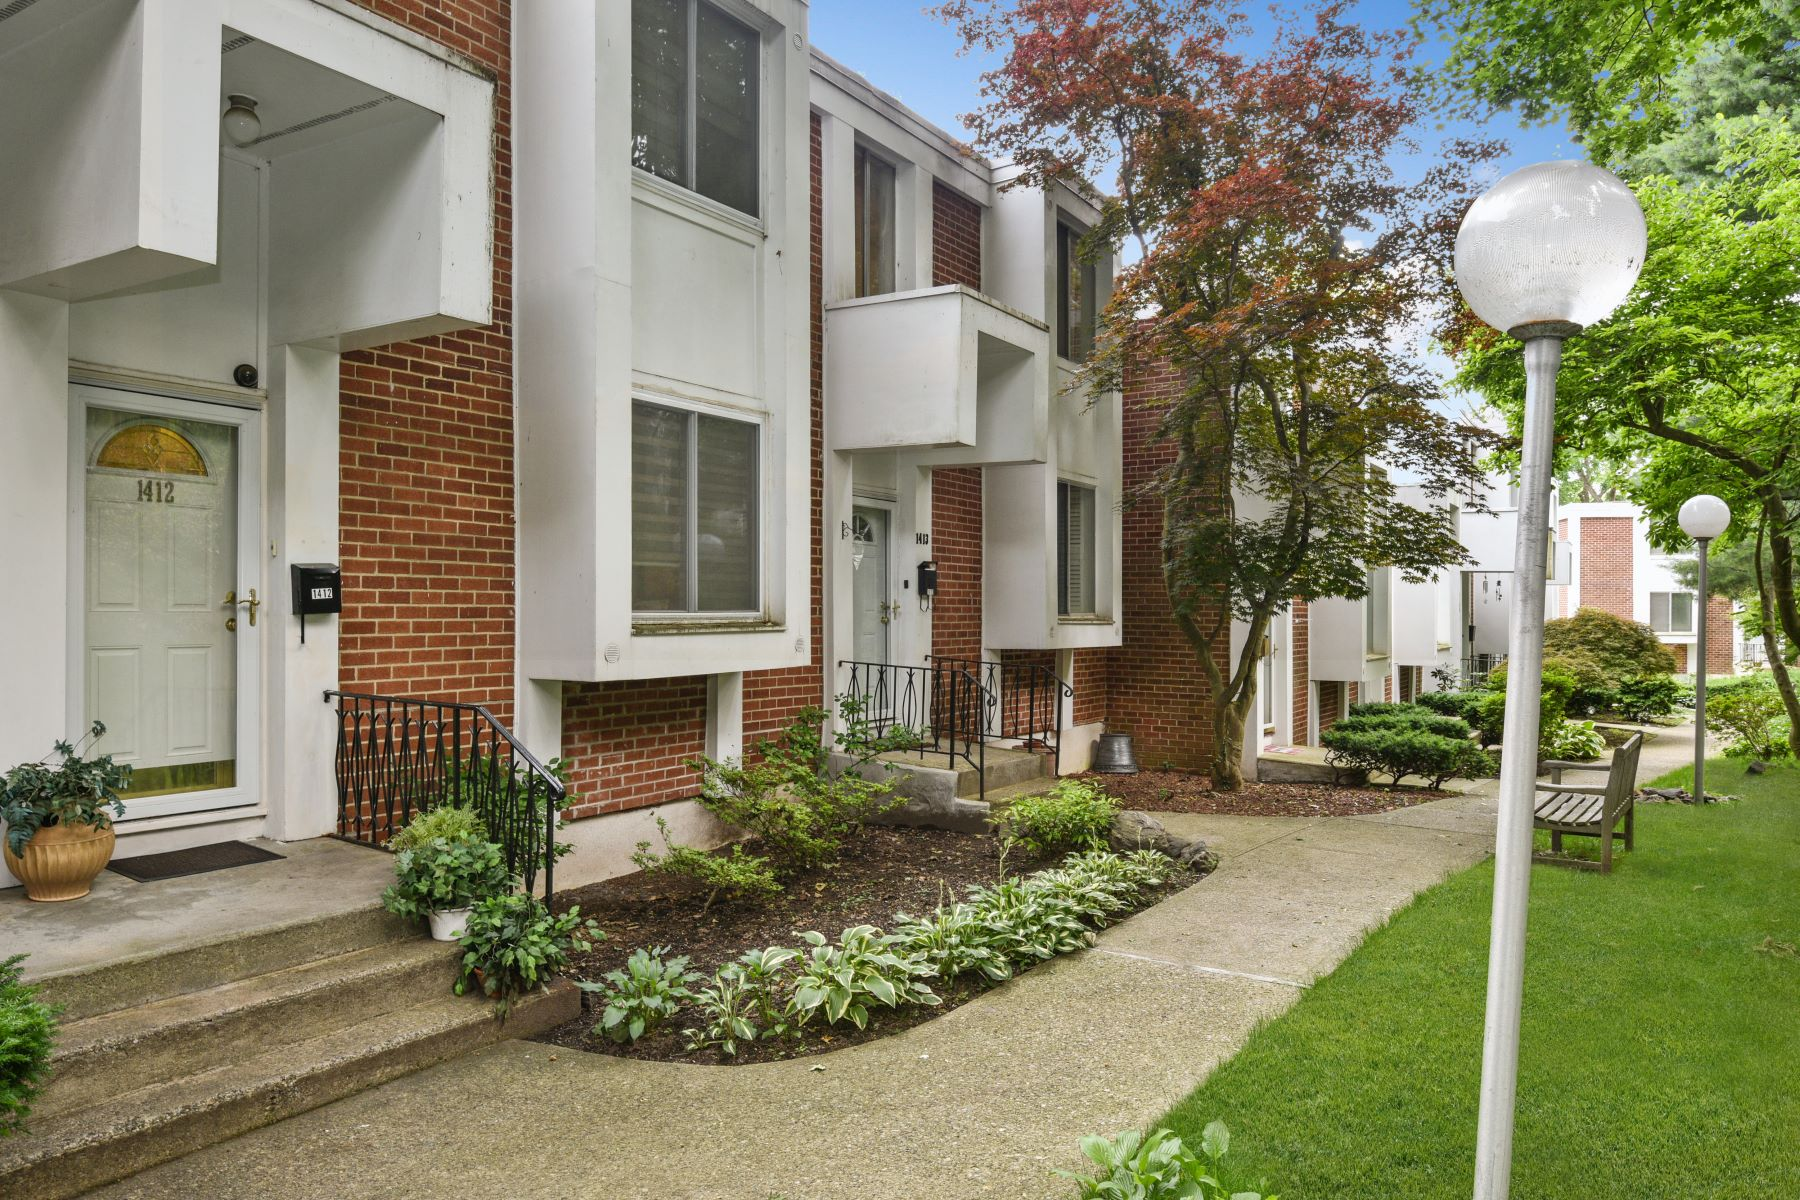 Condominiums for Sale at Renovated Town House with Easy Condo Living 1412 Fox Glen Drive Hartsdale, New York 10530 United States